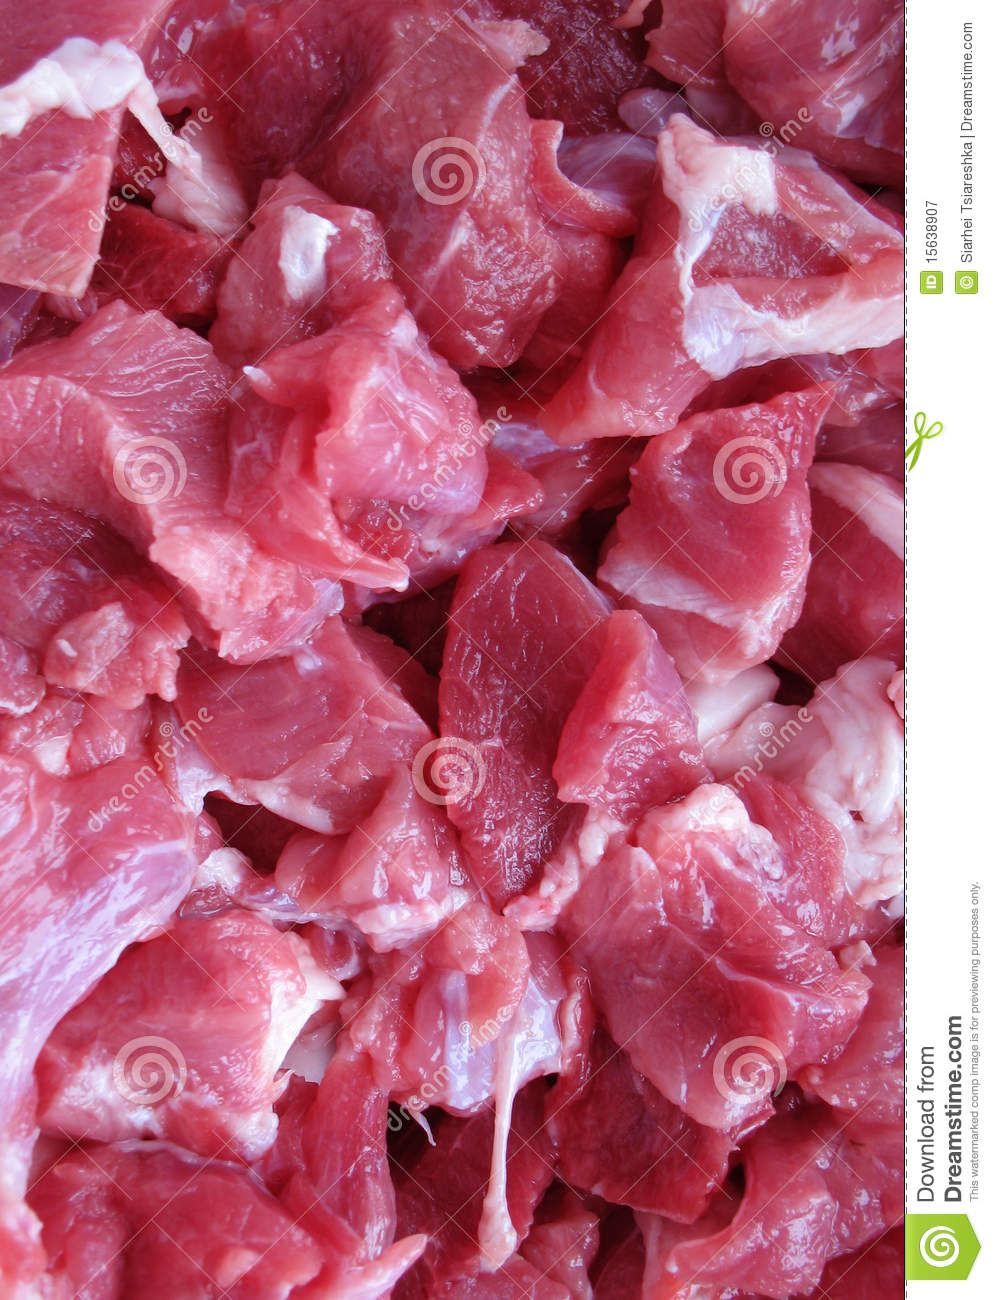 Small Pieces Of Meat Royalty Free Stock Photography